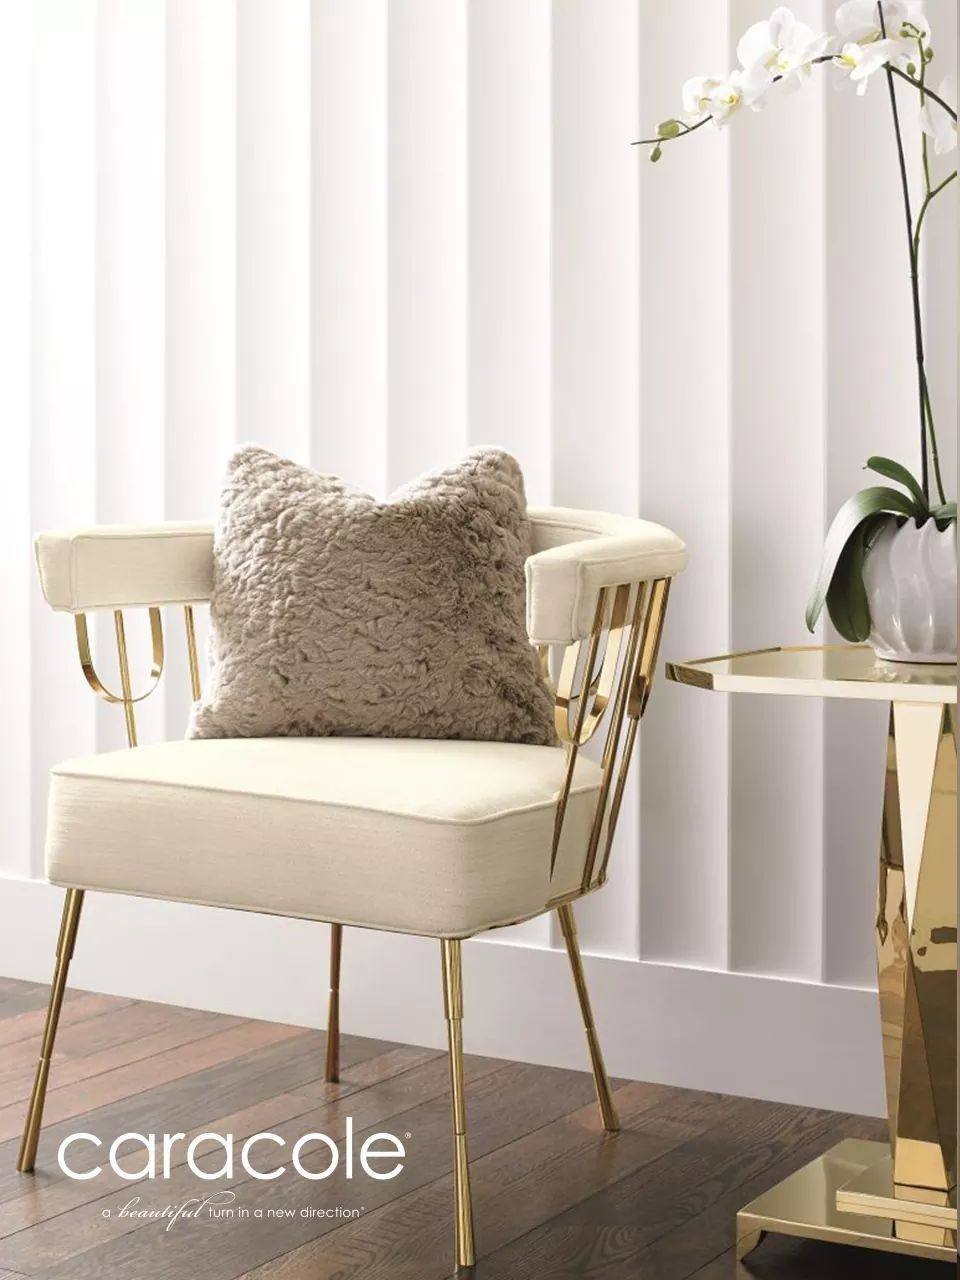 White And Gold Chair Caracole Egypt Interior Furniture In